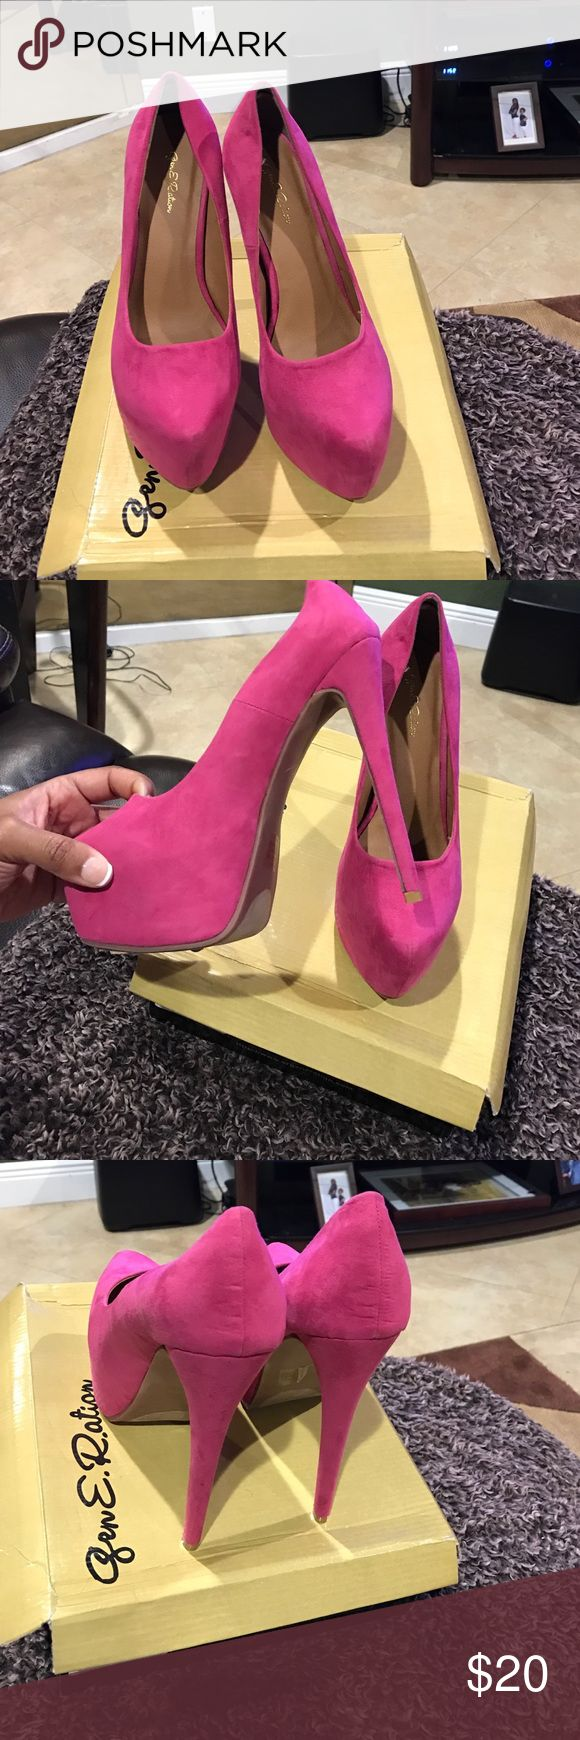 Women's Hot Pink Pumps Hot pinks pumps from shoe store ERGE NEVER WORN. Erge Shoes Heels